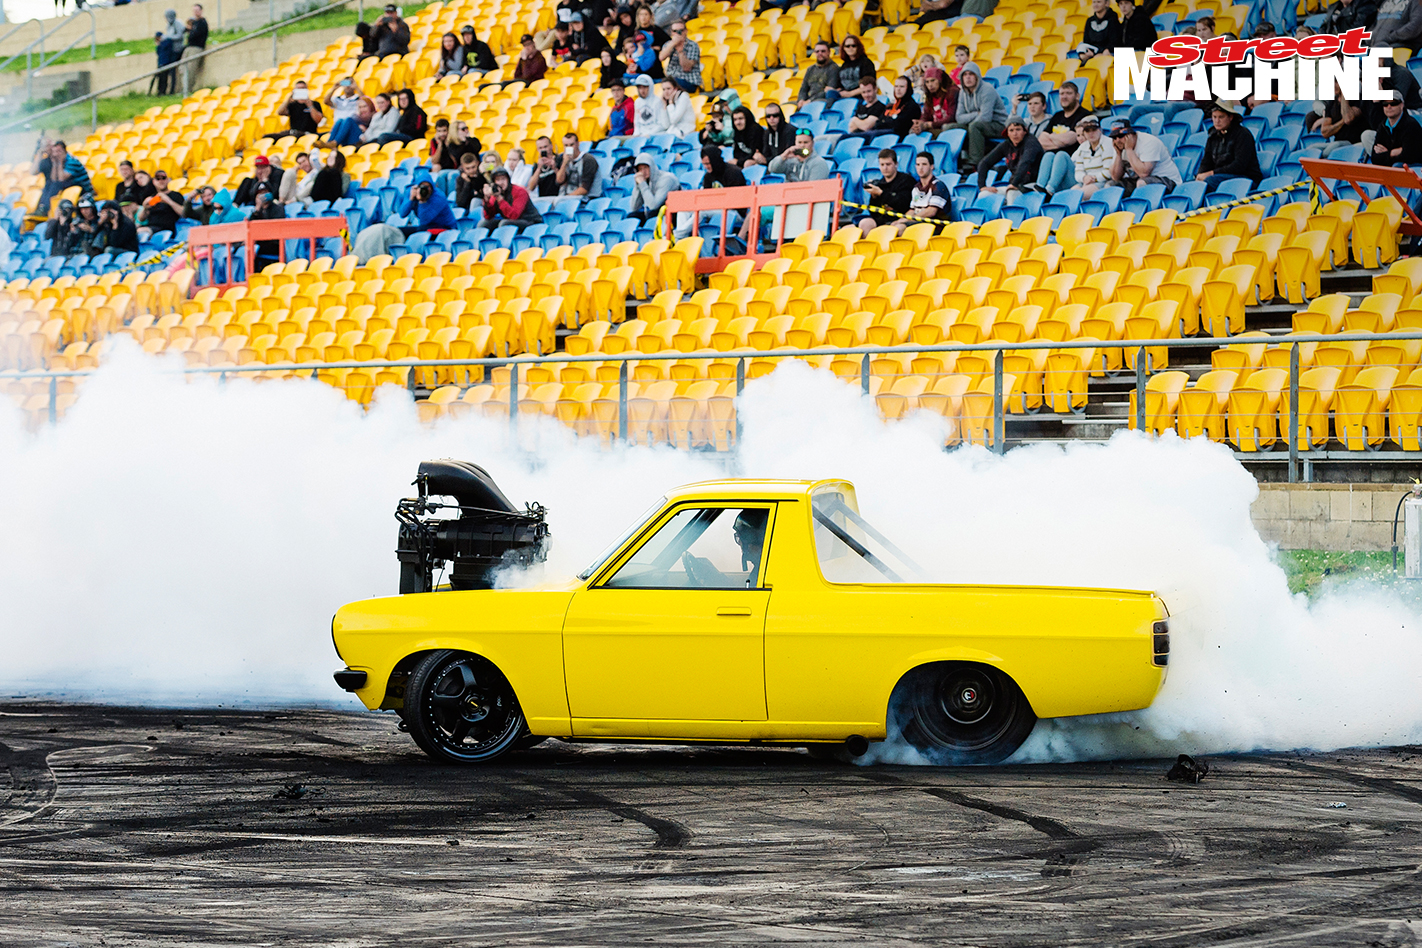 Datsun Ute Burnout Blown